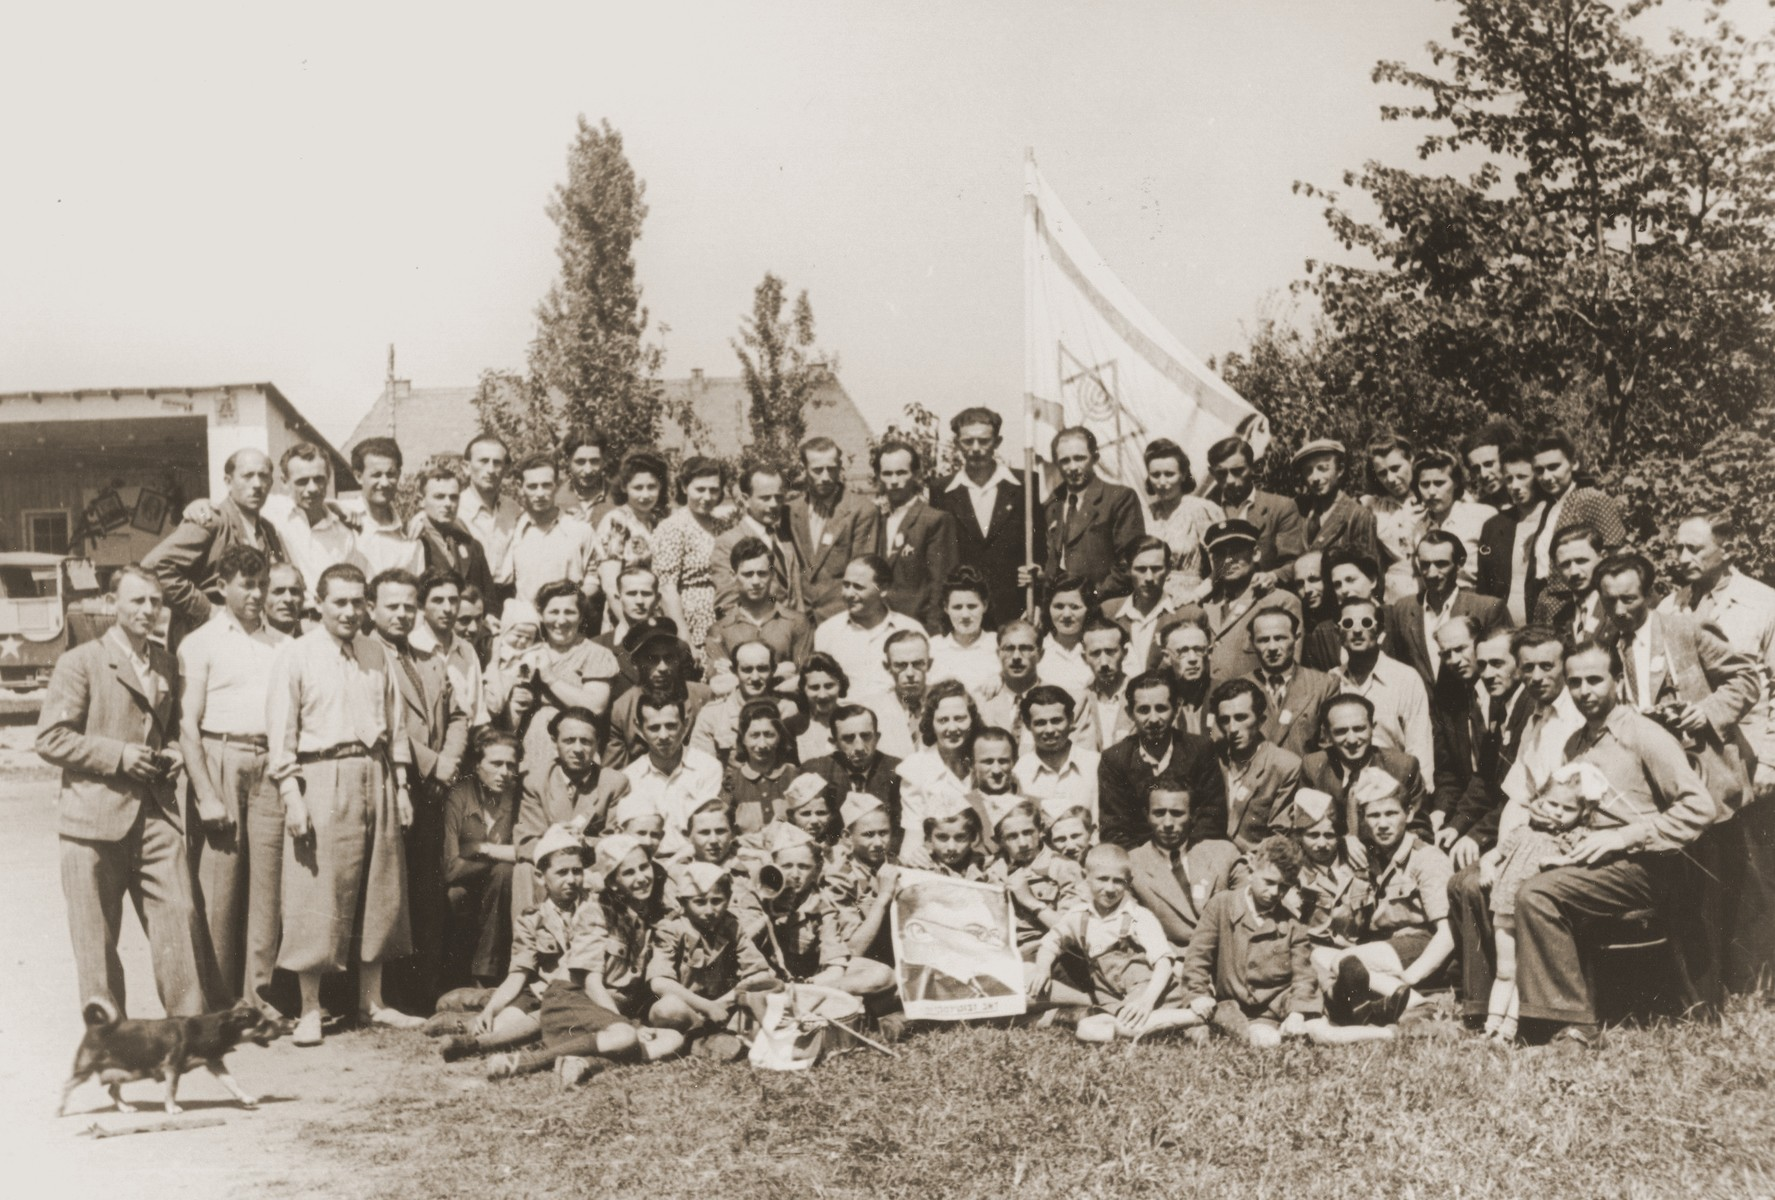 Group portrait of members of Betar Zionist youth movement in Neu Freimann displaced persons camp holding a Zionist flag and portrait of Zev Jabotinsky.  Among those pictured in the second row are the pricipal Mrs. Spektor and Moshe Blautal.